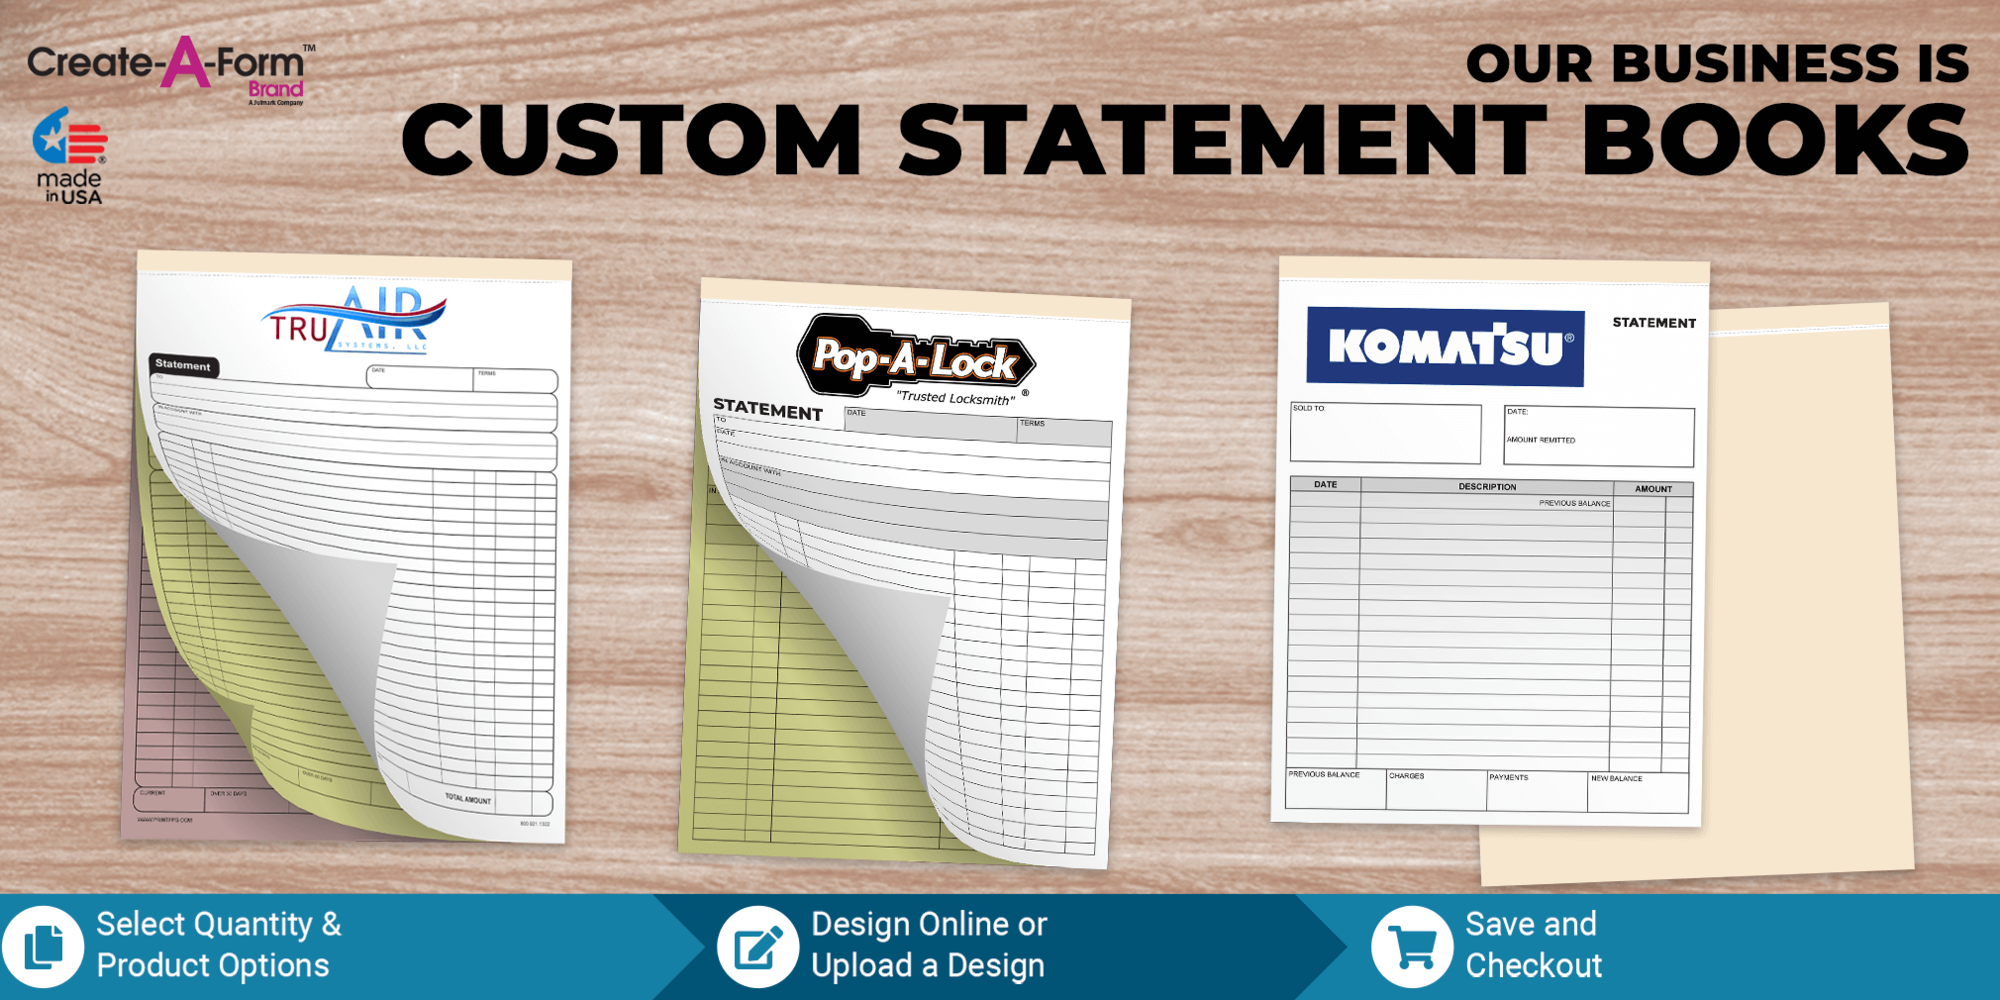 https://printpps.com/images/products_gallery_images/Banner_8_5x11NCR_Statement_ProdFeat_Cover.png